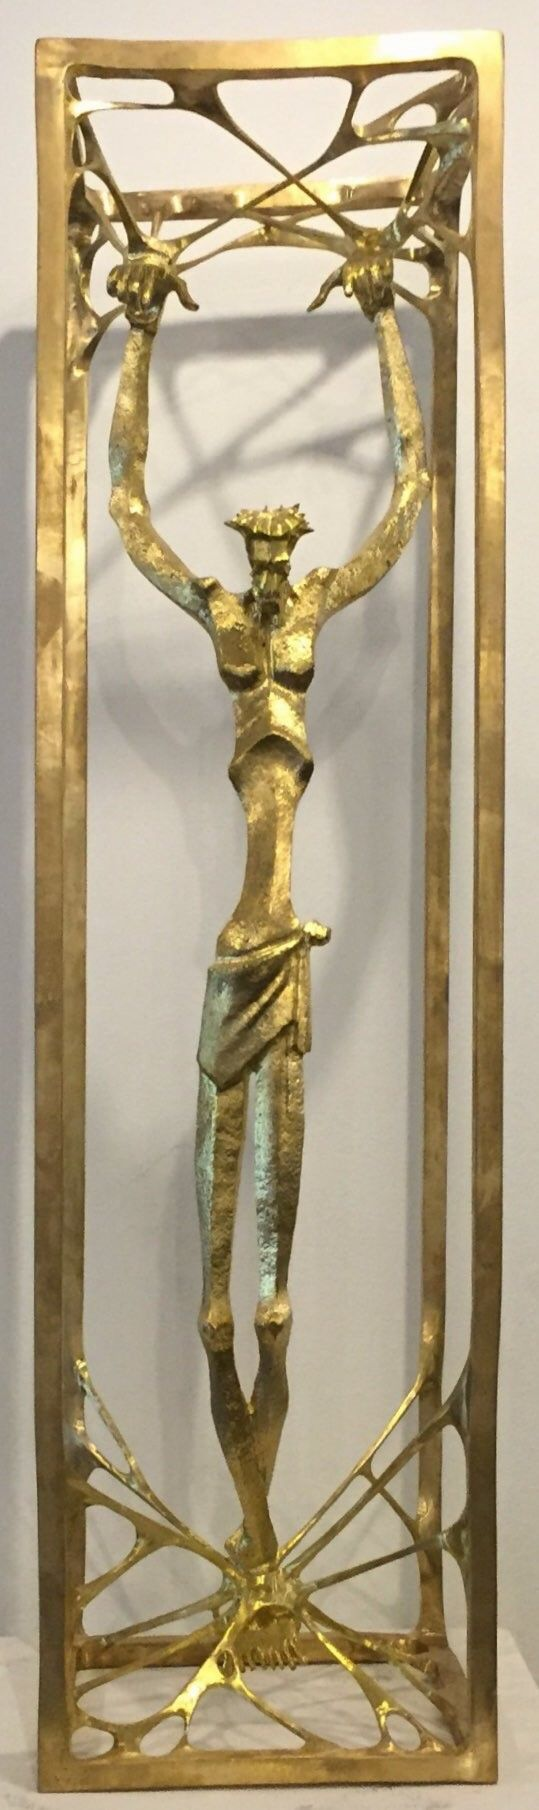 THE CONCEALER By Nathan Doss  In Sculpture, Bronze Size: 100(H) X 40(W)  Price 6000 CHF  See it here: http://www.c-glory.ch/artwork.html #CGlory #TheConcealer #Artwork